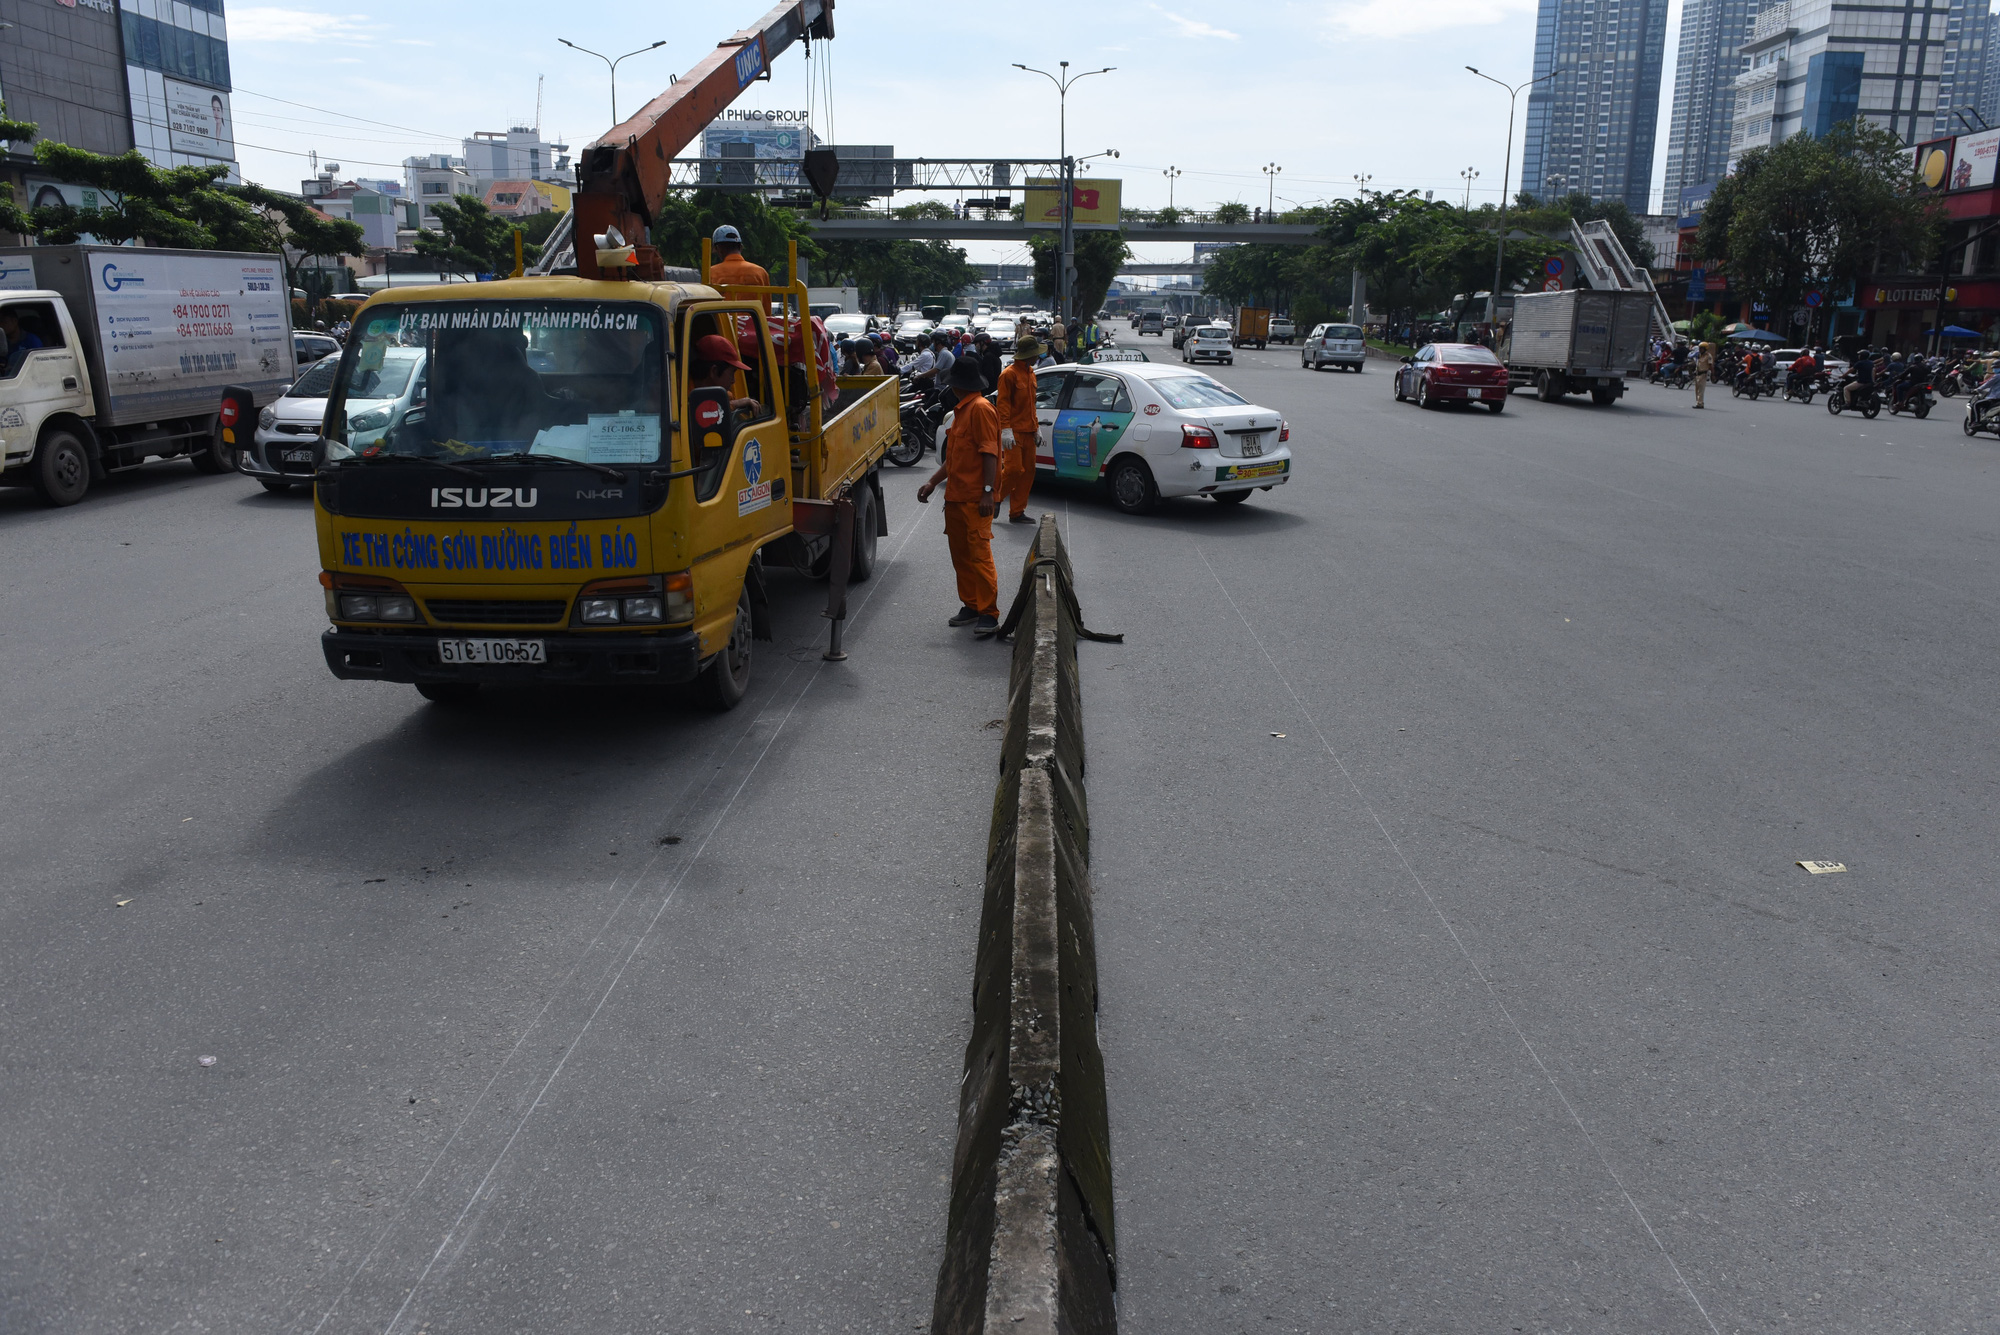 Construction units remove a concrete median at the Nguyen Van Thuong – Dien Bien Phu intersection in Binh Thanh District, Ho Chi Minh City. Photo: Le Phan / Tuoi Tre